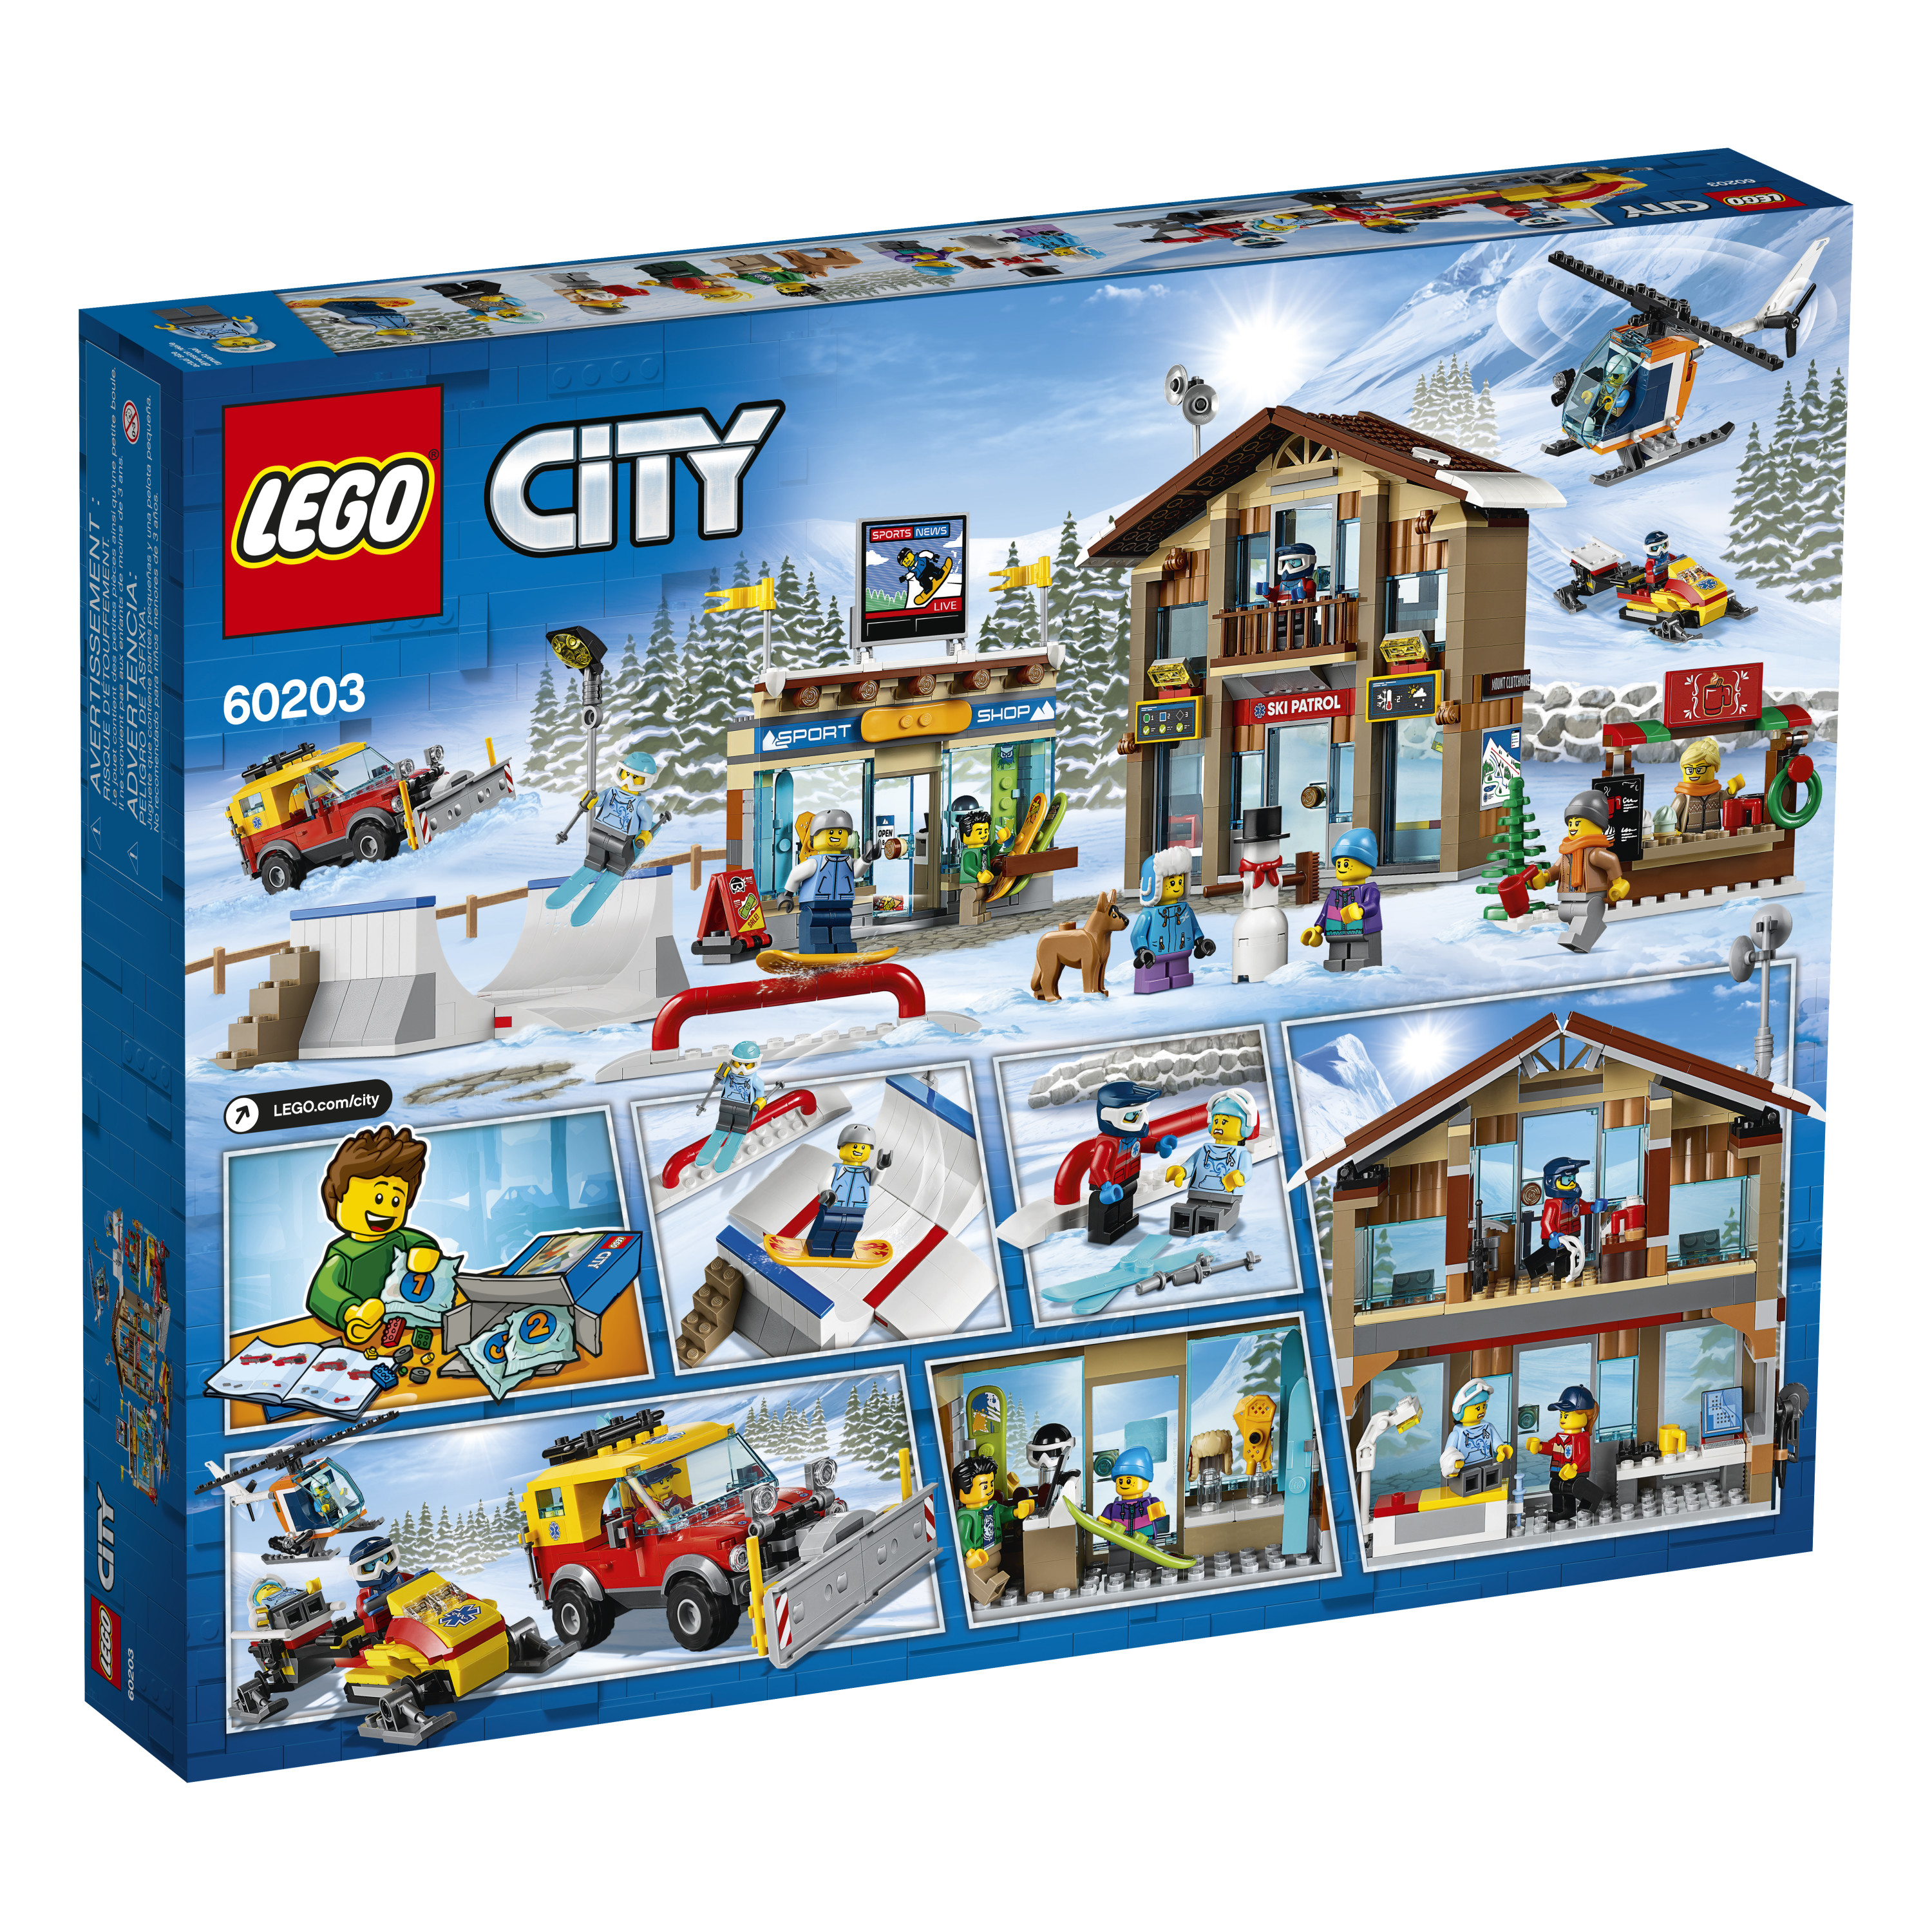 LEGO Rescue Helicopter /& Pilot Minifigure From Lego City 60203 NEW No Box